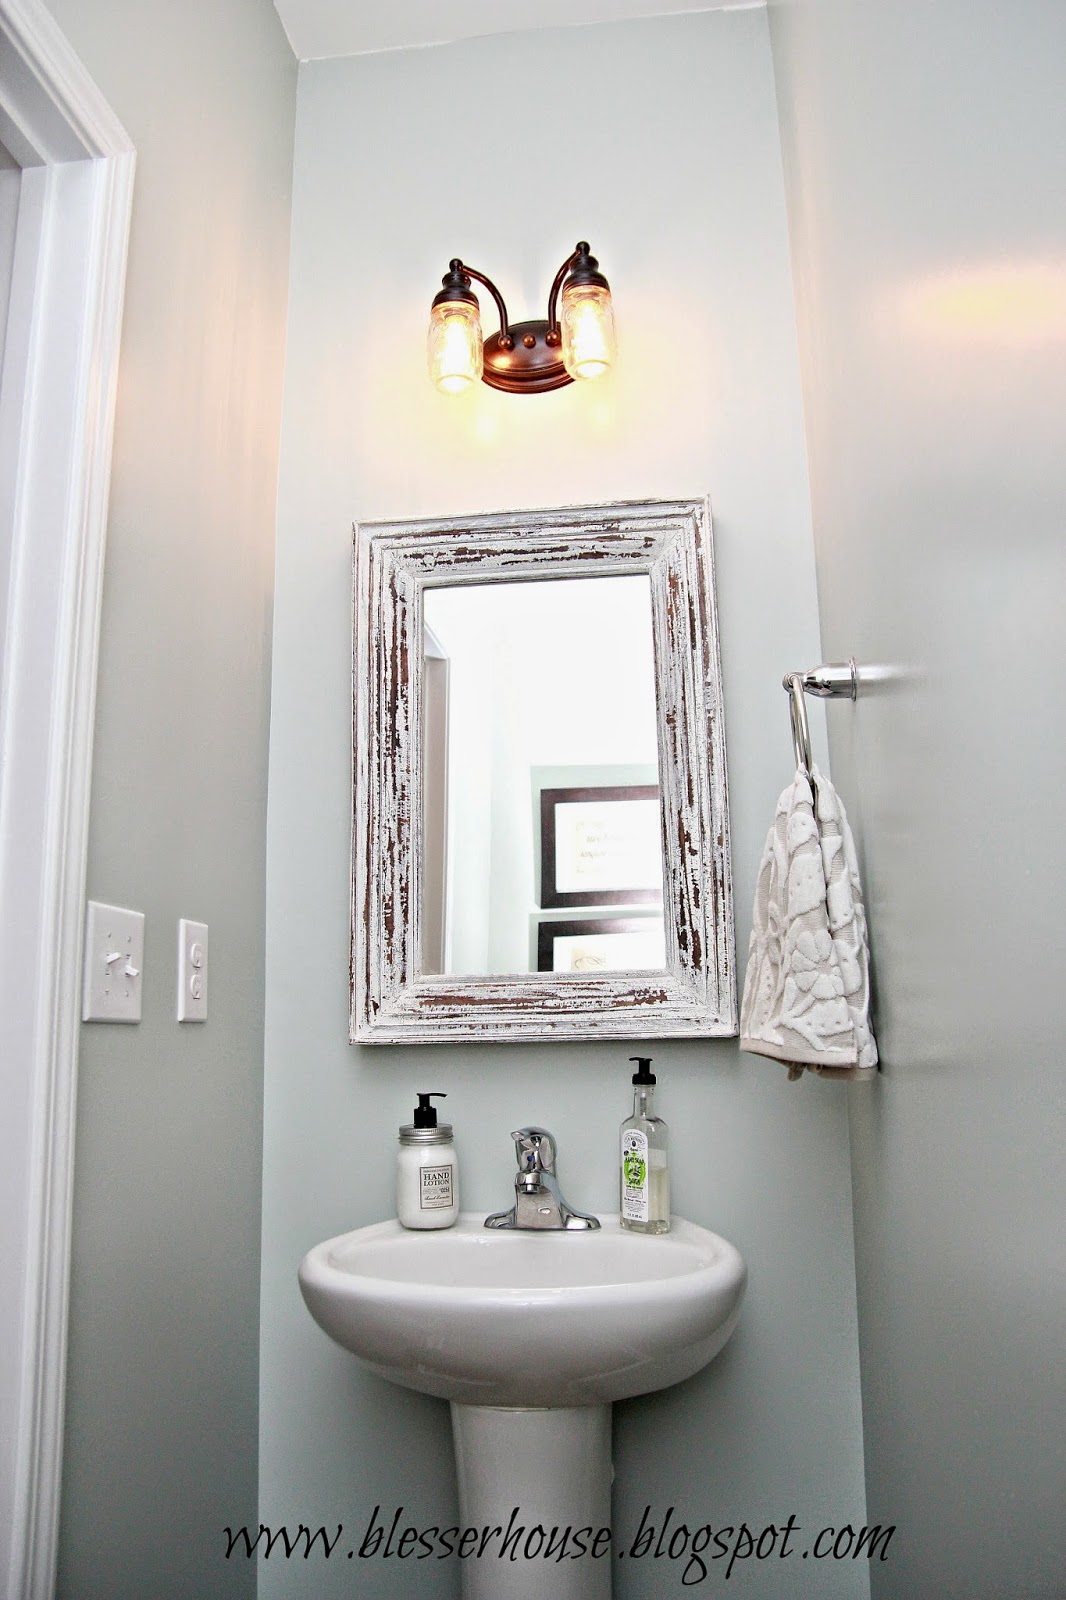 vanity bathroom light diy jar vanity light bless er house 14903